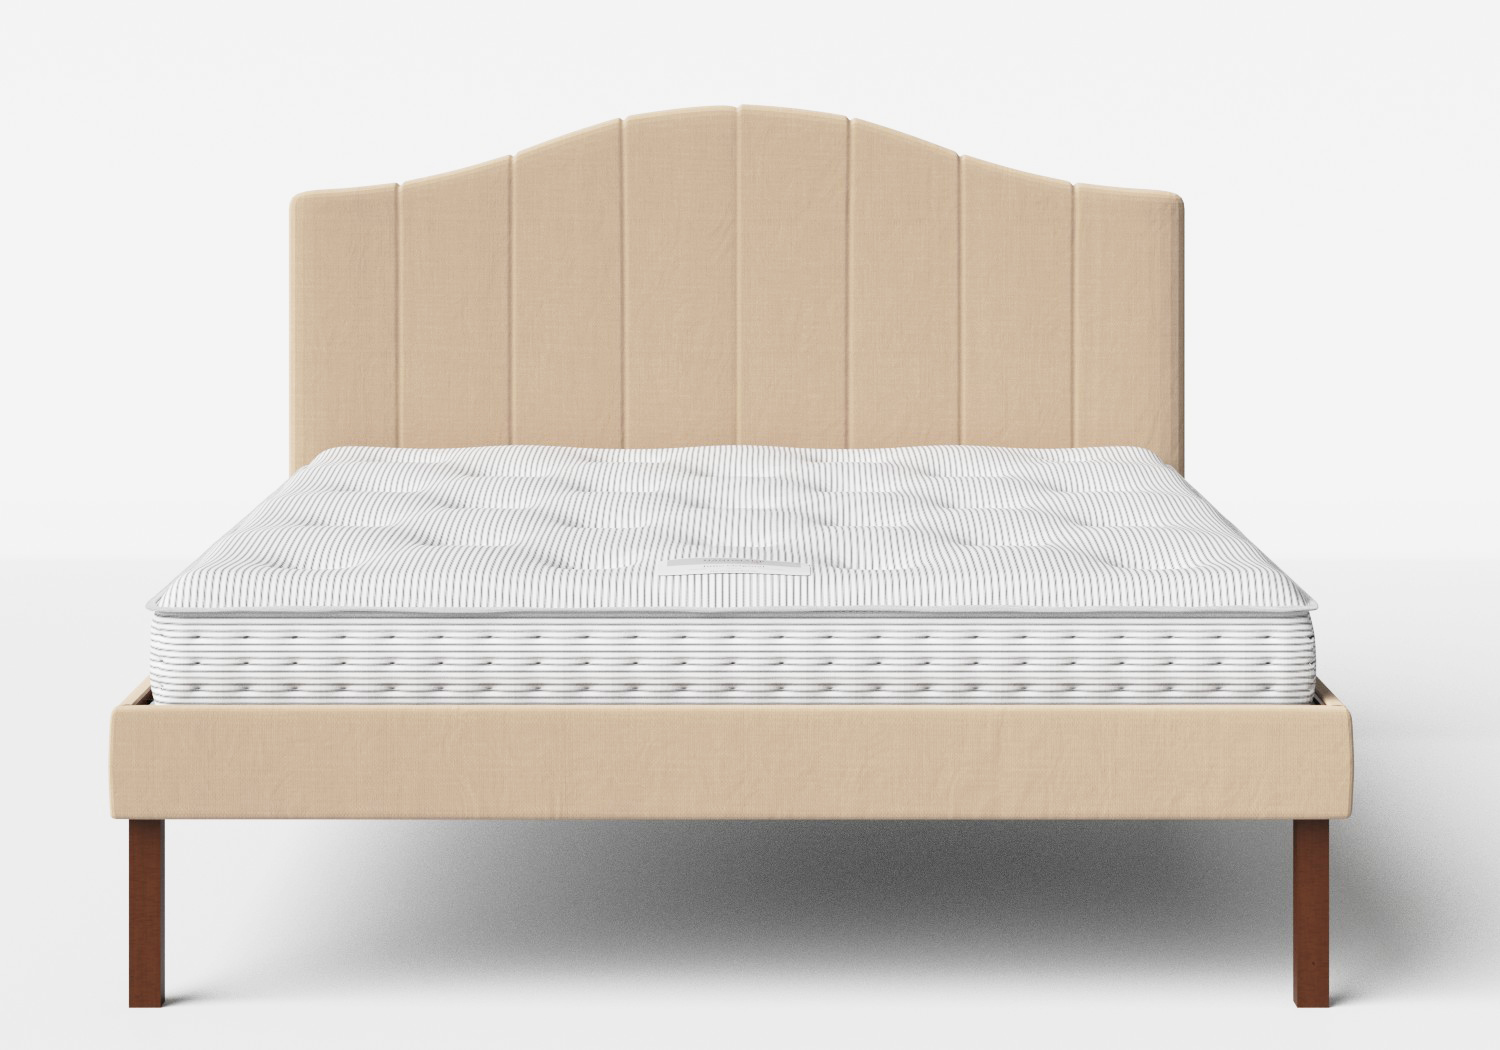 Yoshida Upholstered Bed with Natural fabric shown with Juno 1 mattress